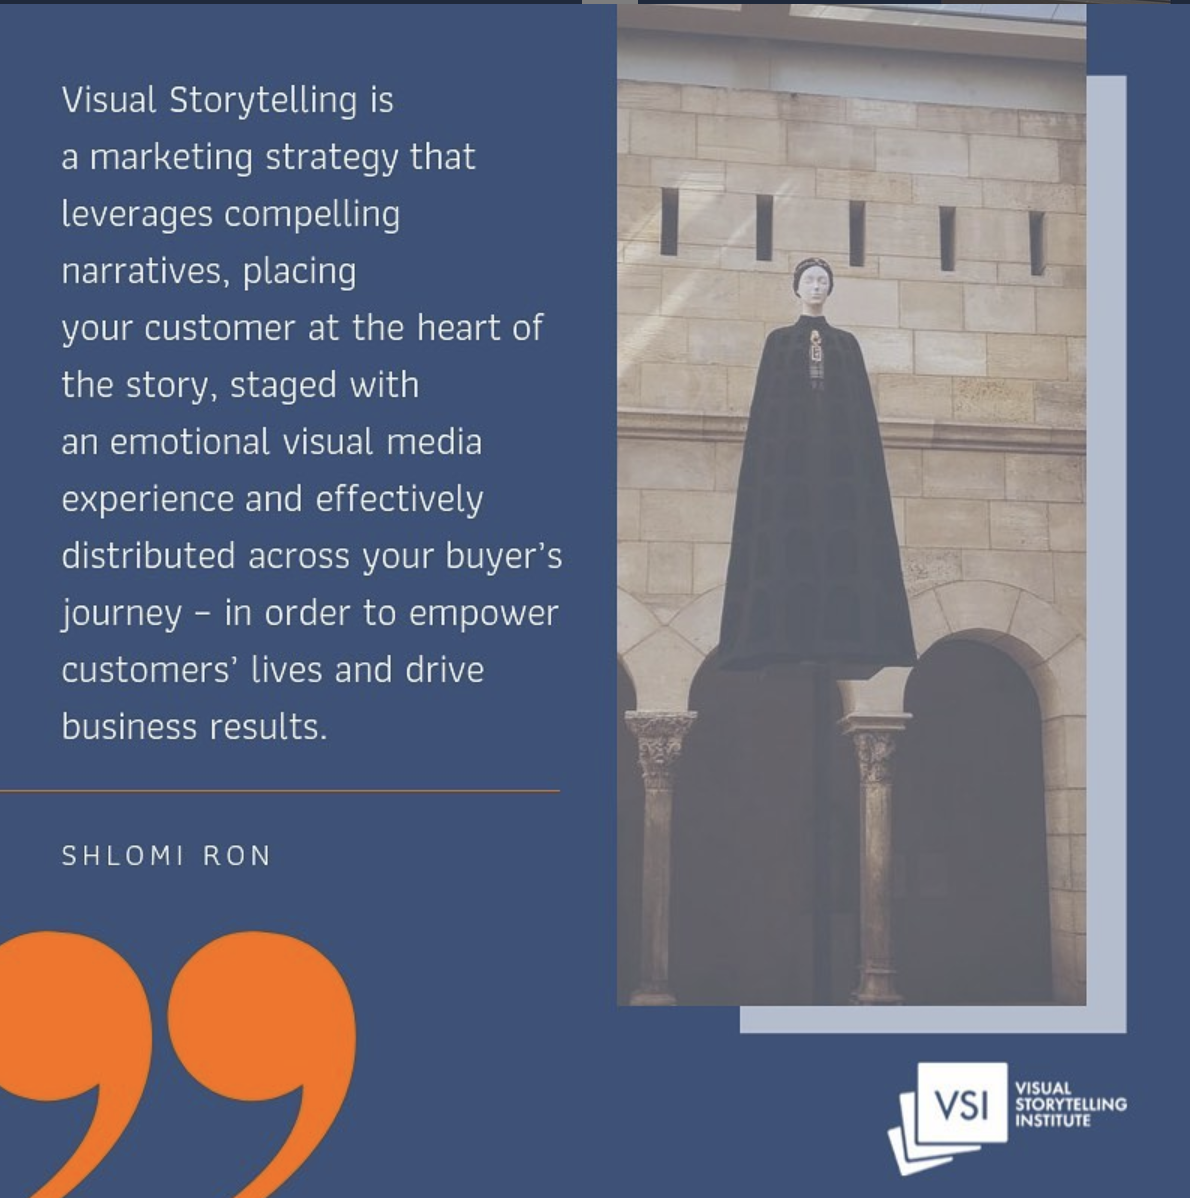 What is visual storytelling?